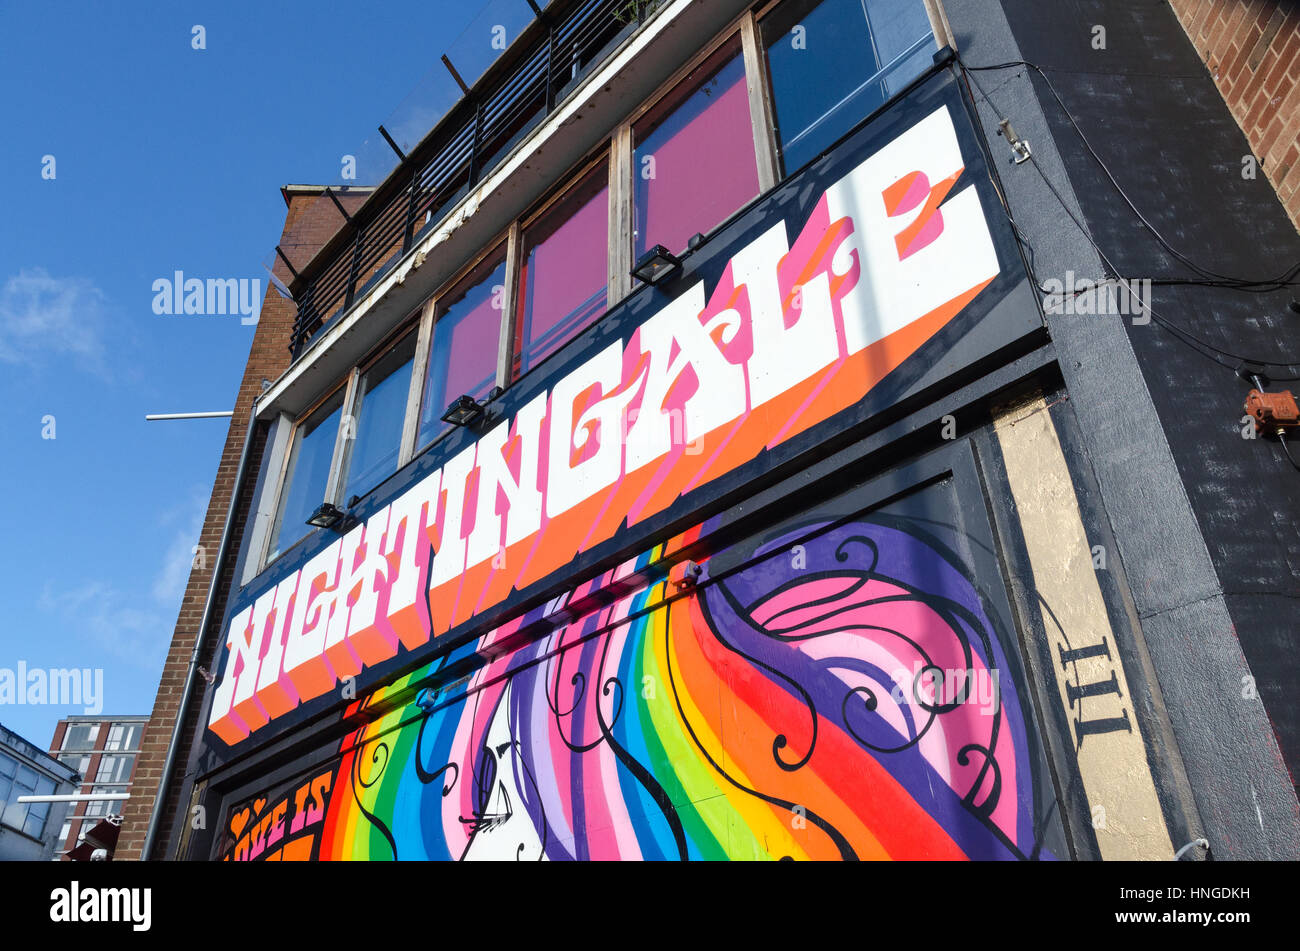 The Nightingale Club gay club in the gay village area of Birmingham - Stock Image